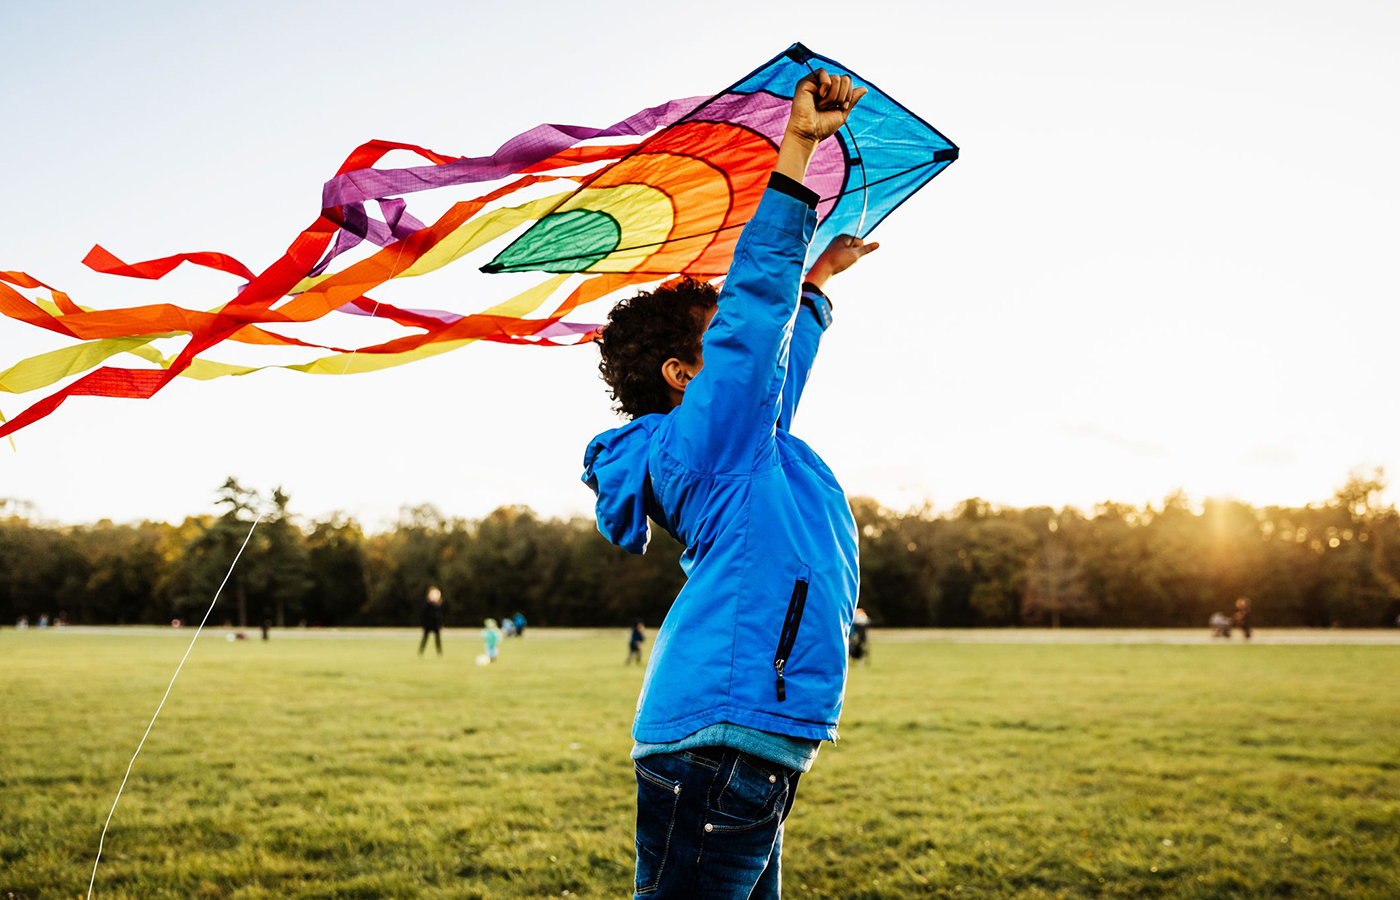 Reach the Highest Heights With These 12 Best Kites